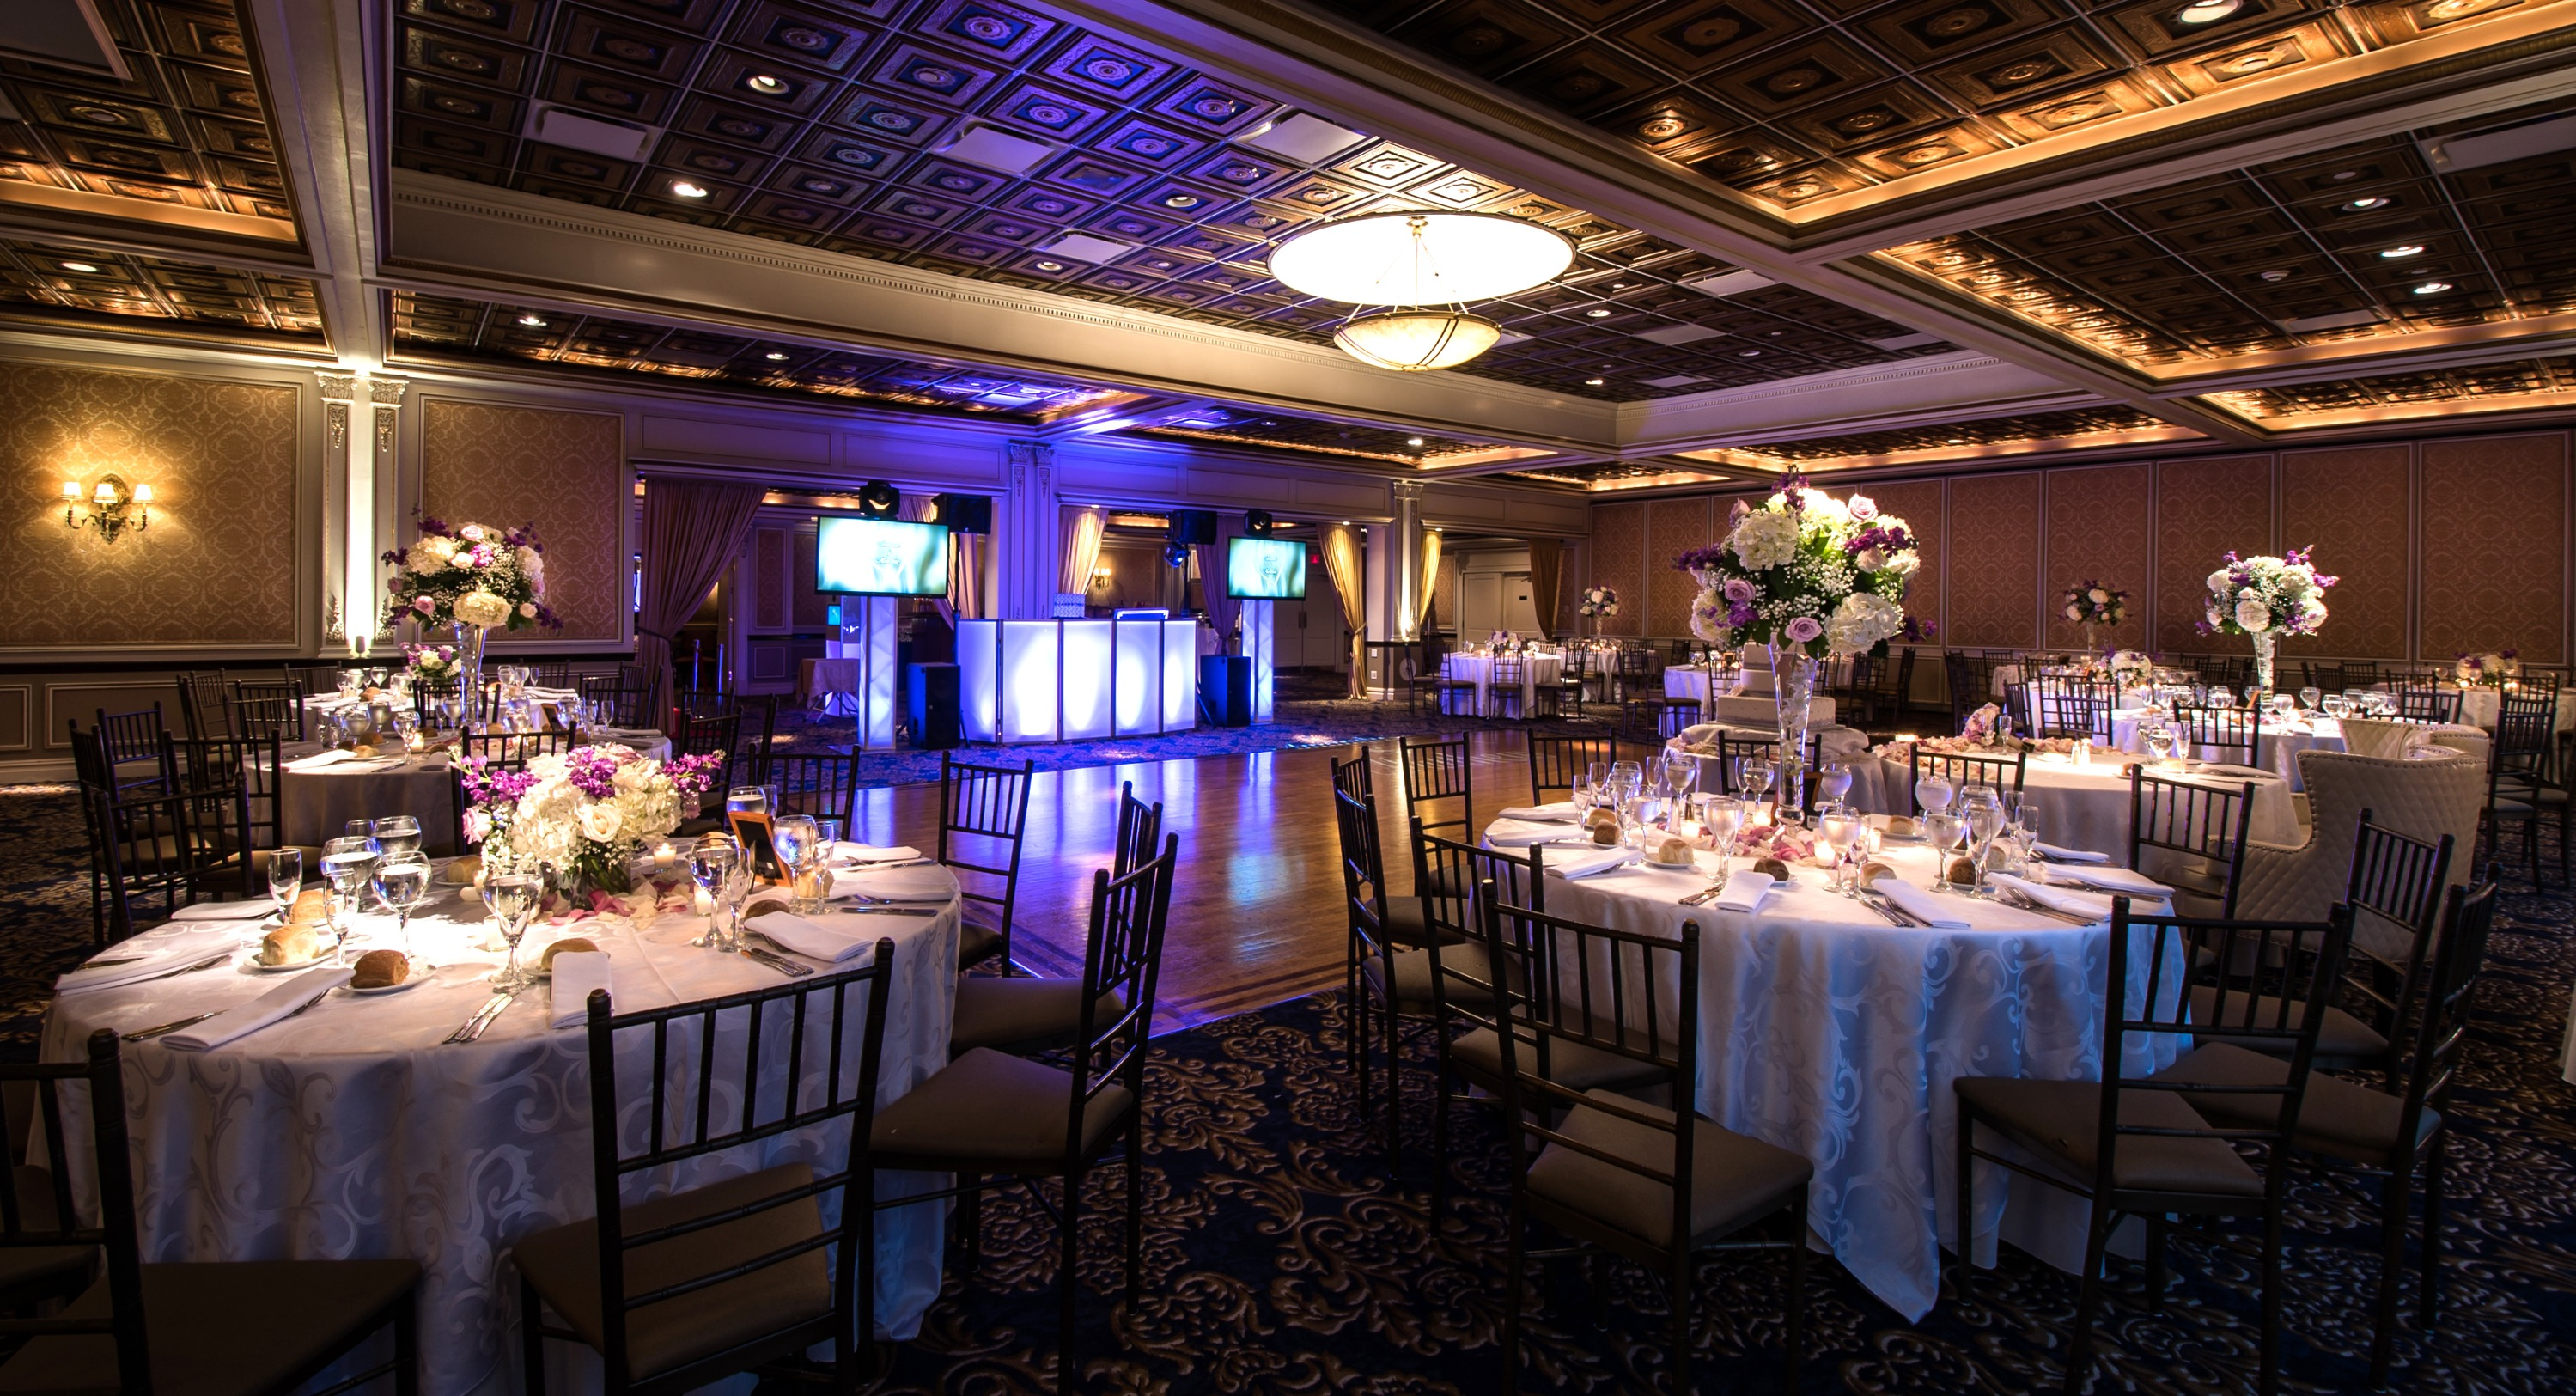 reception-hall-night-vip-country-club-18